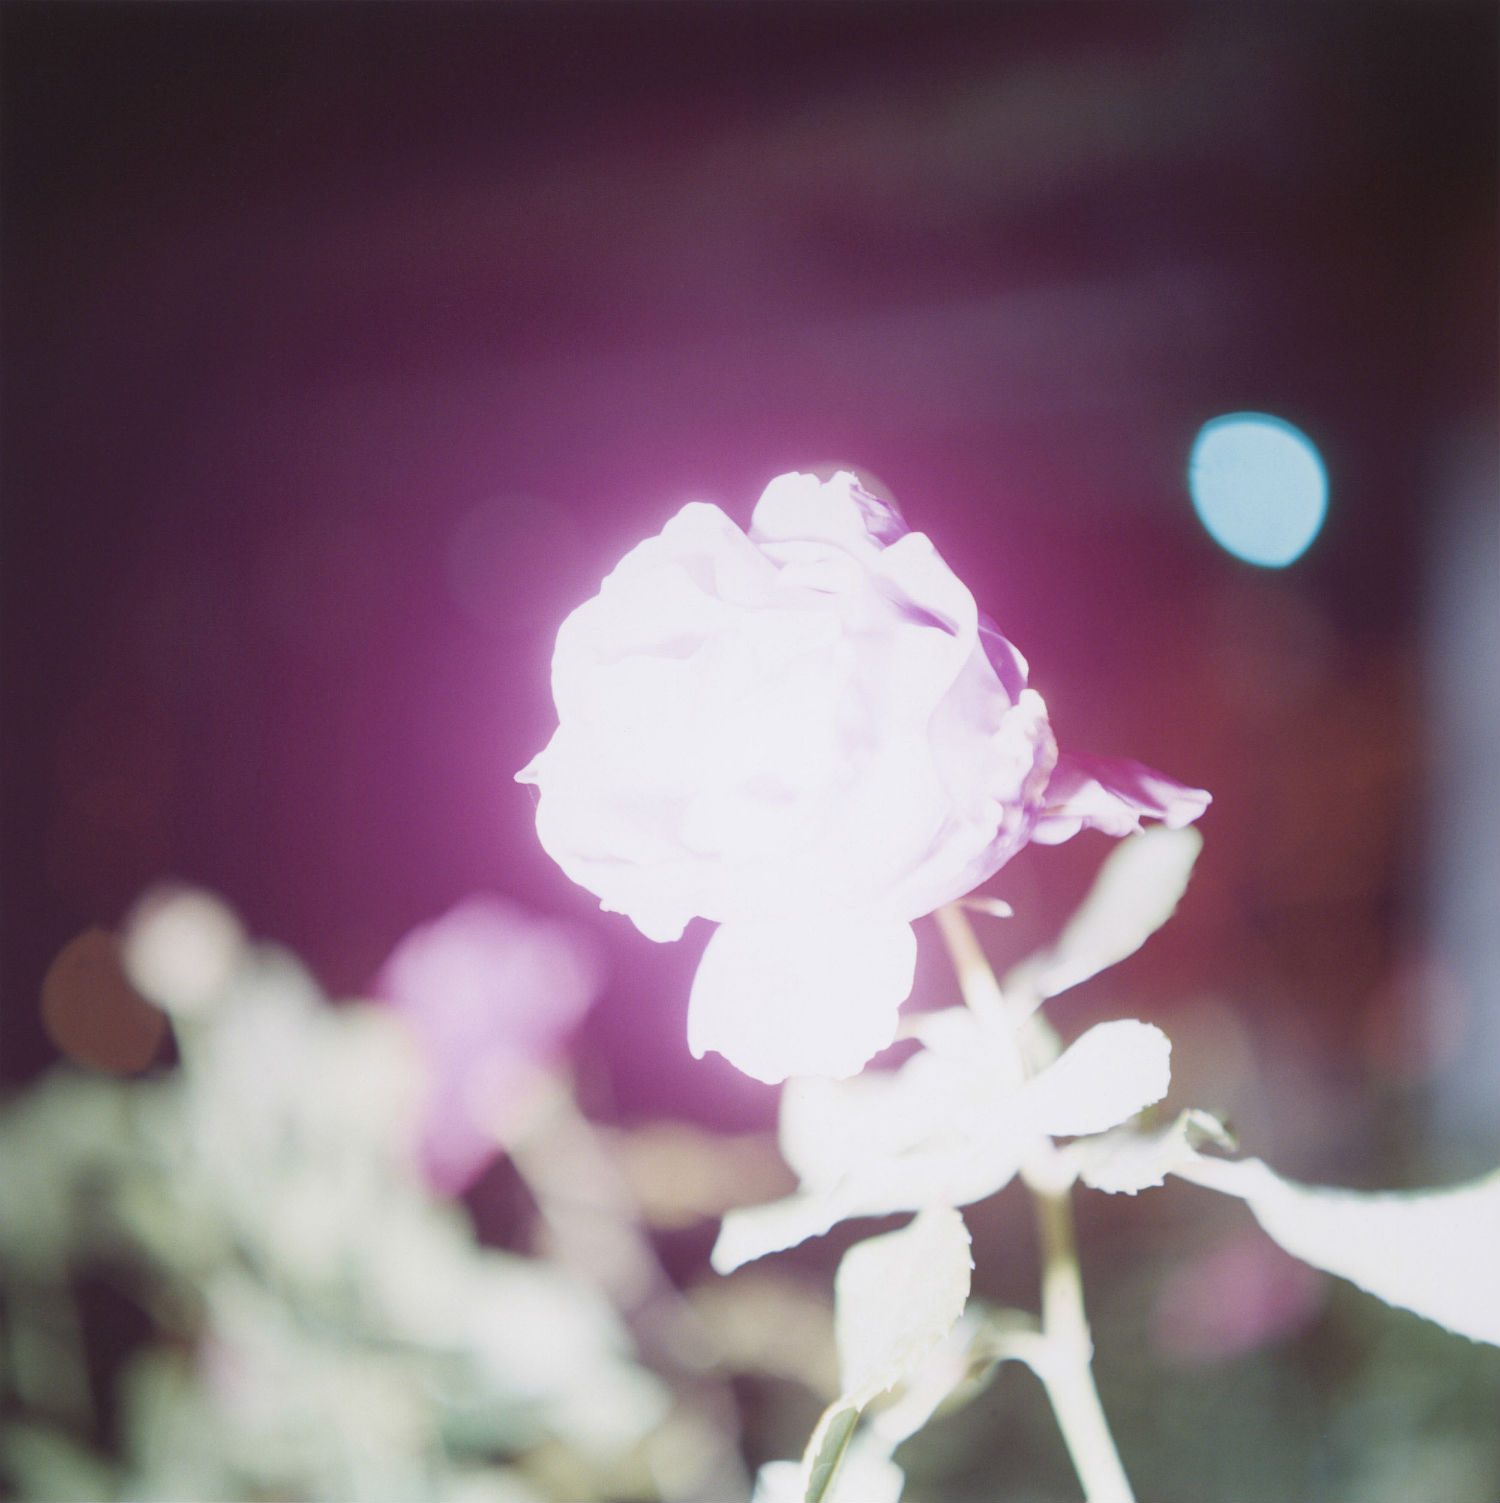 Rinko Kawauchi japan photography pink light